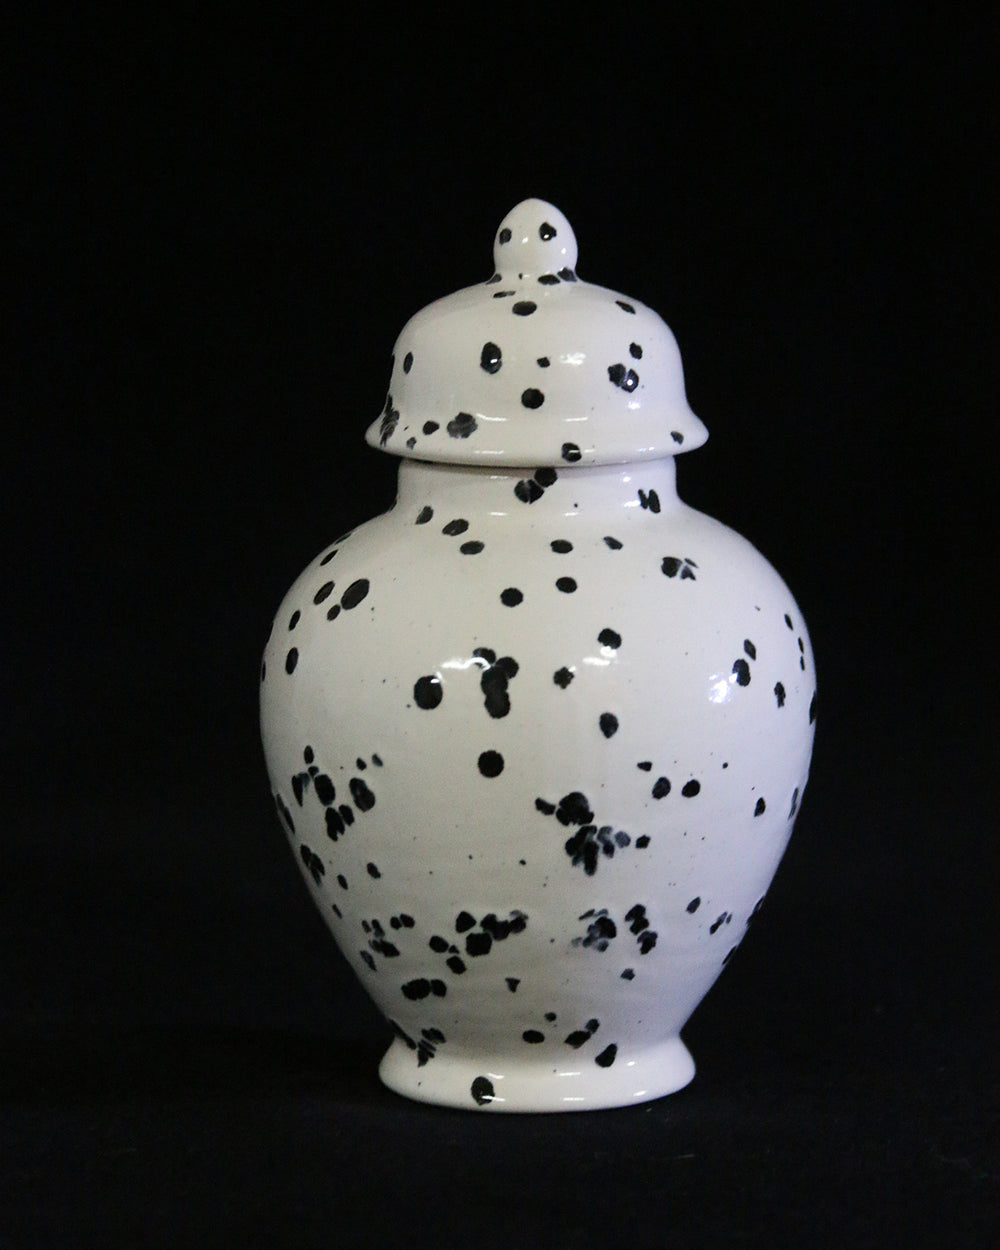 Hancrafted Ceramic Urn - Ink Spots - XSmall